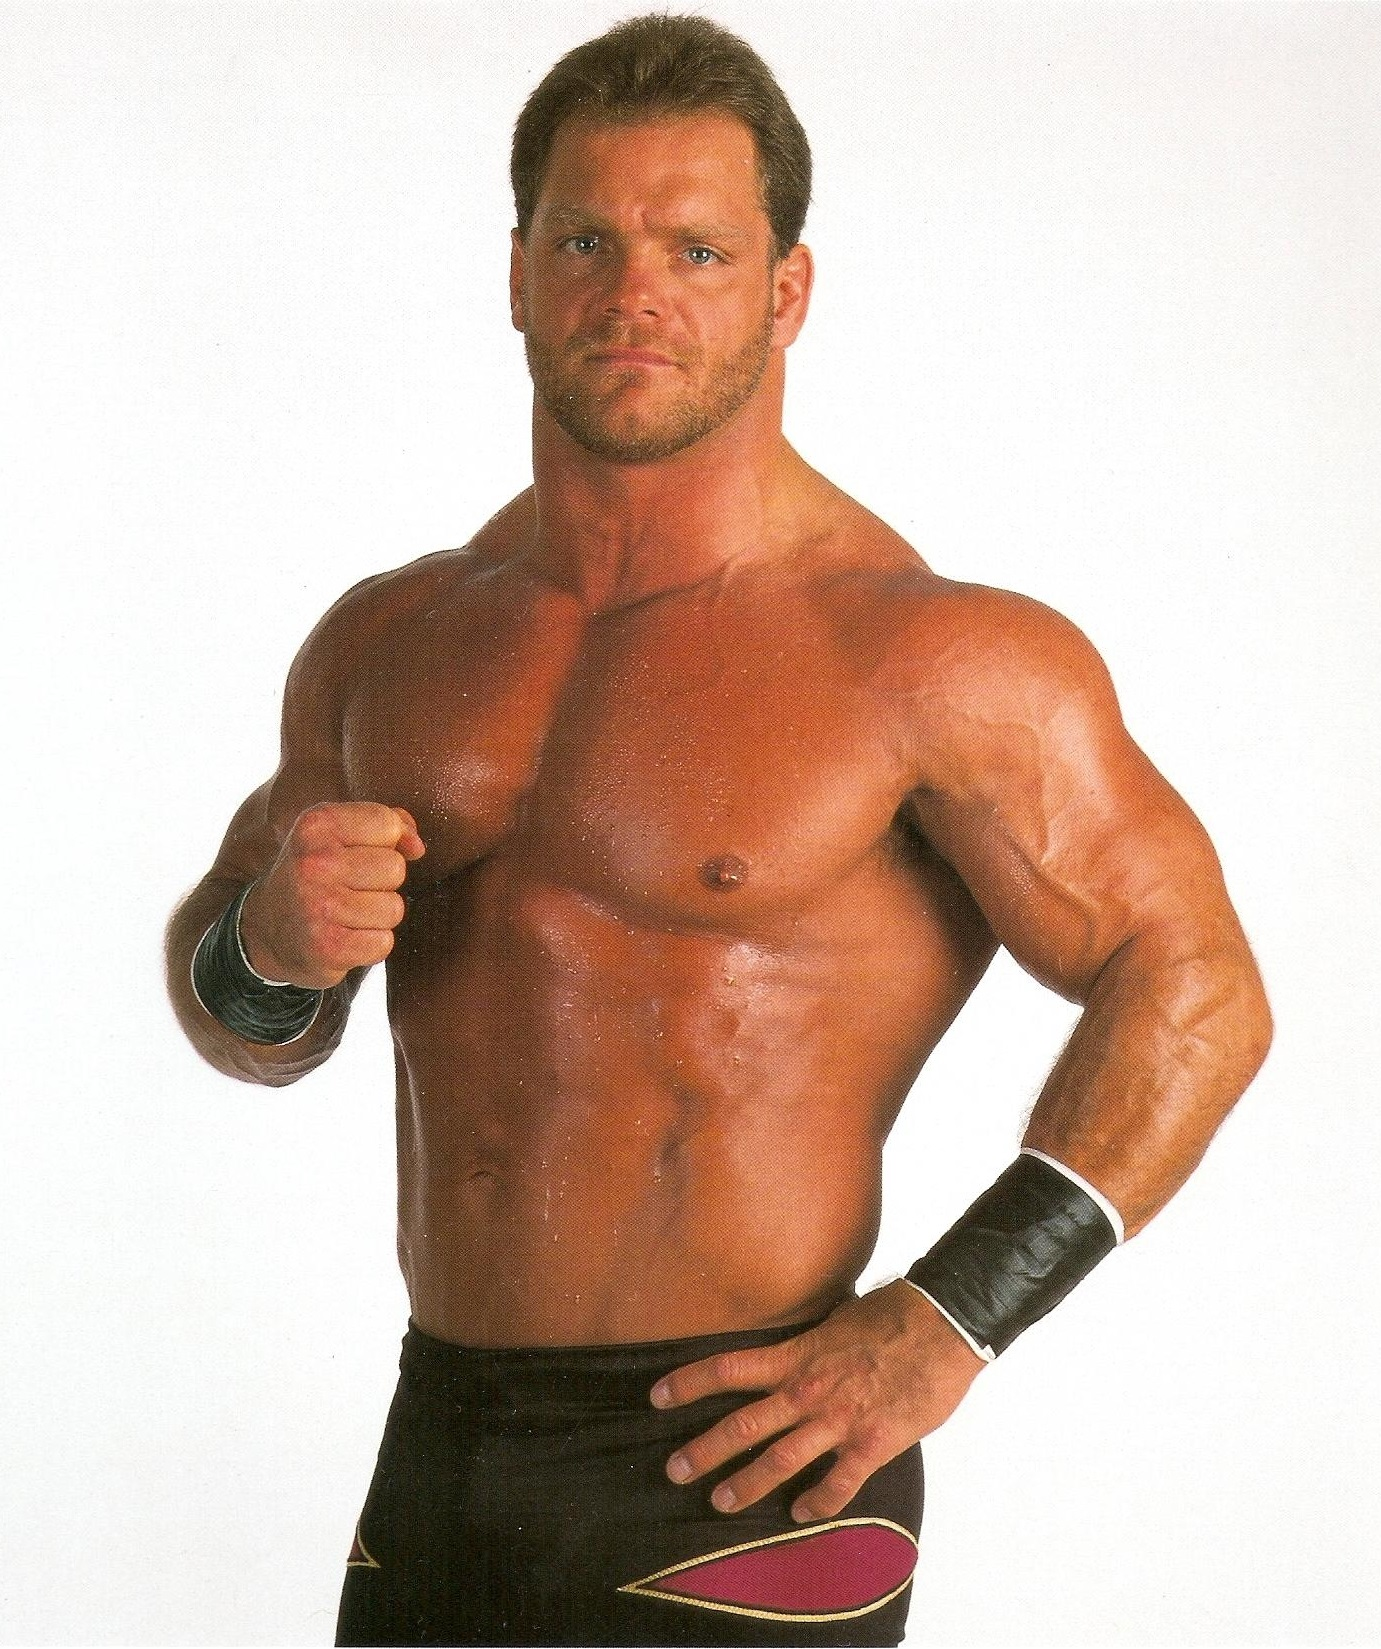 """wwes handling of the chris benoit """"june will mark the 10-year anniversary of the murders of nancy and daniel benoit by their father, legendary wrestler chris benoit, who then killed himself"""" chris was daniel's father and nancy's husband."""